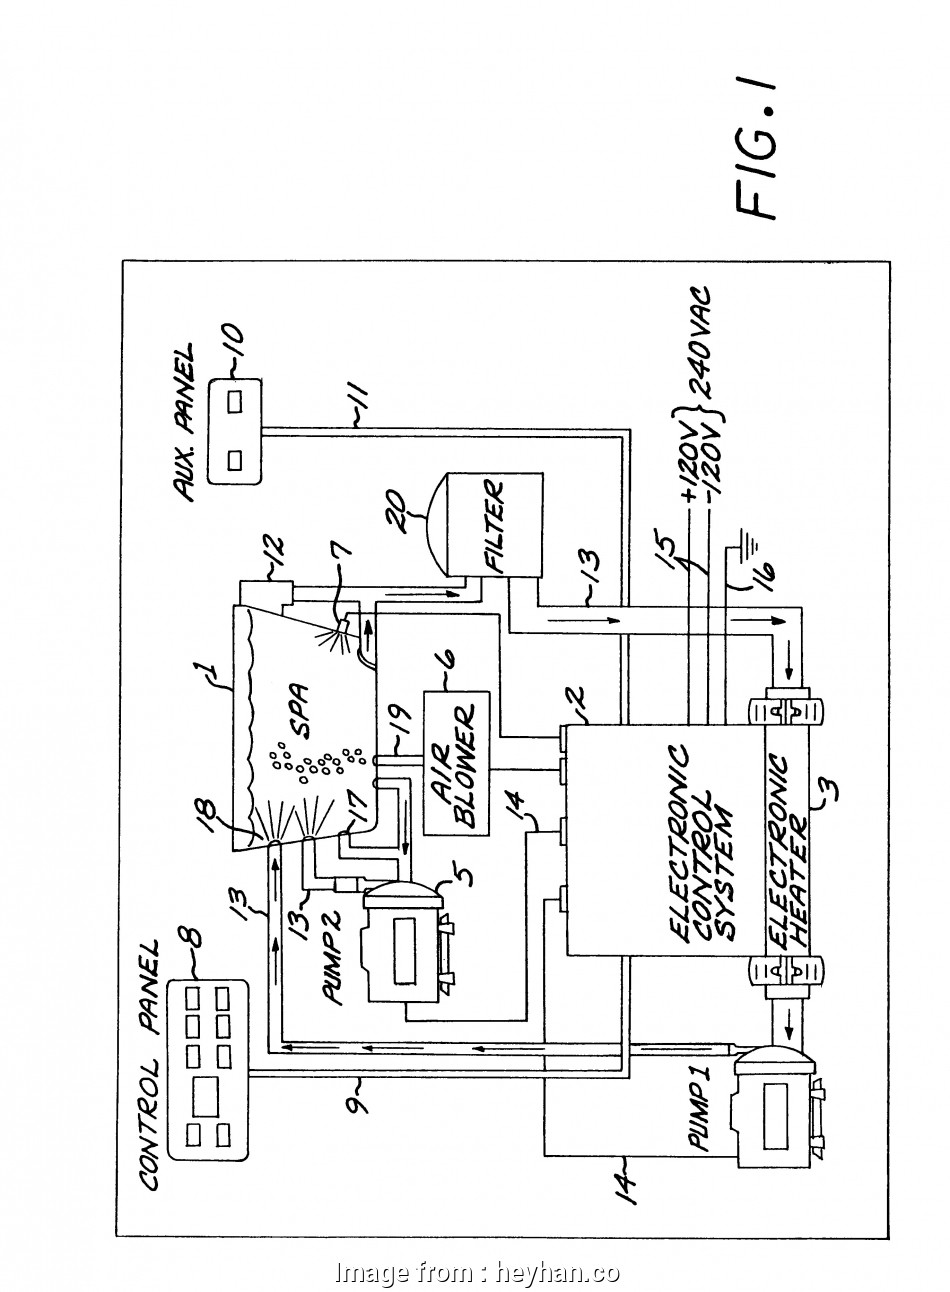 Gfci Outlet Wiring Diagram Creative Ungrounded Gfci Wiring Diagram Explained Wiring Diagrams Rh